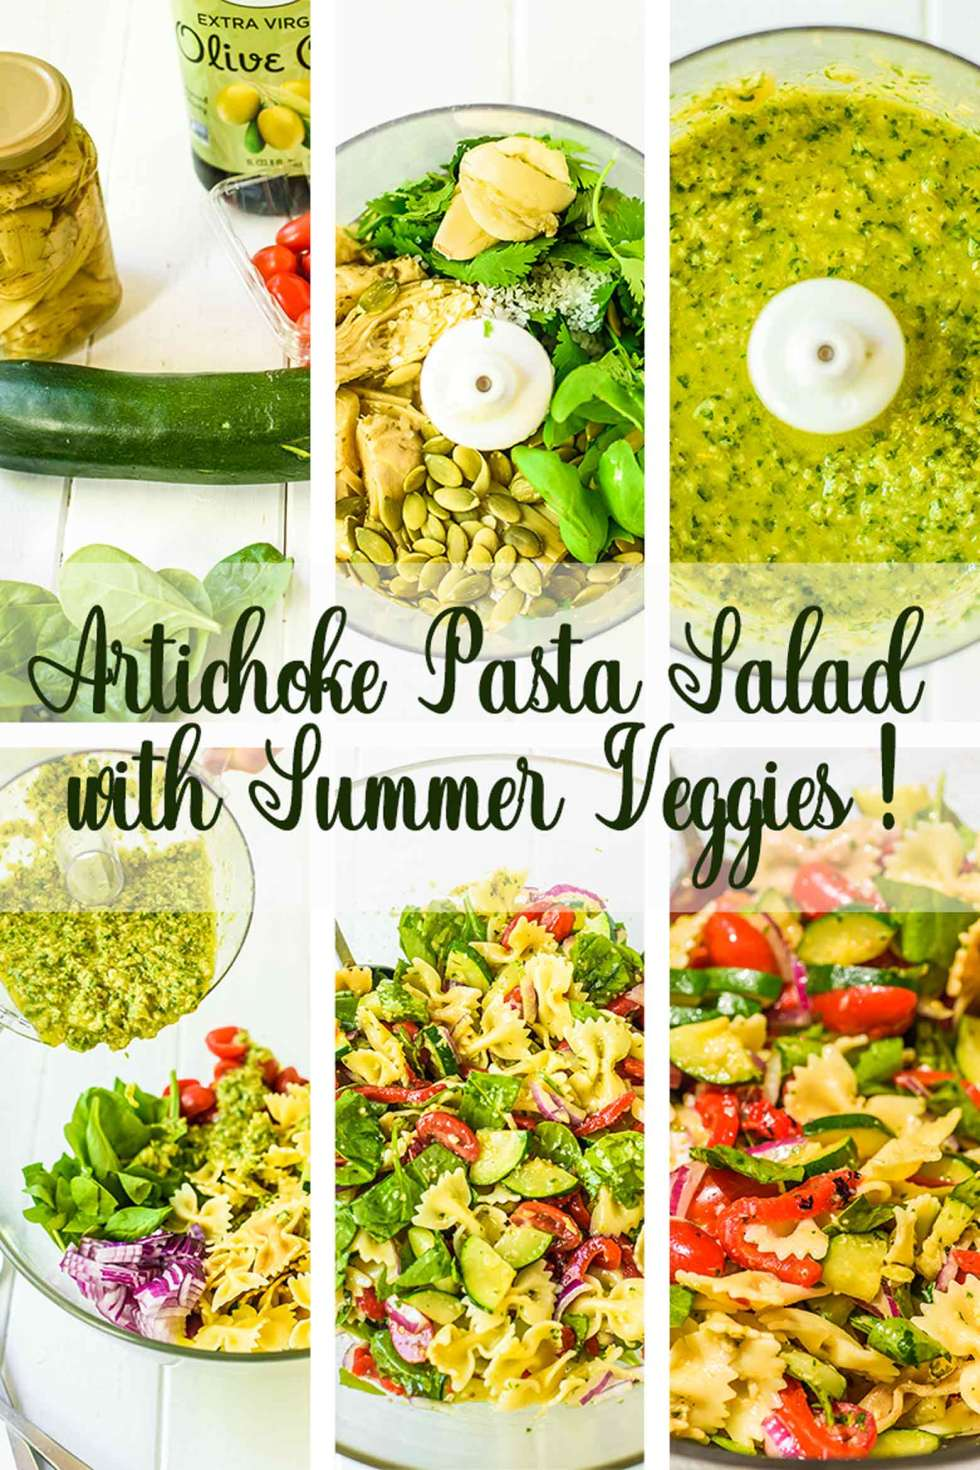 Assembling Homemade Pasta Salad with Artichokes and Summer Vegetables